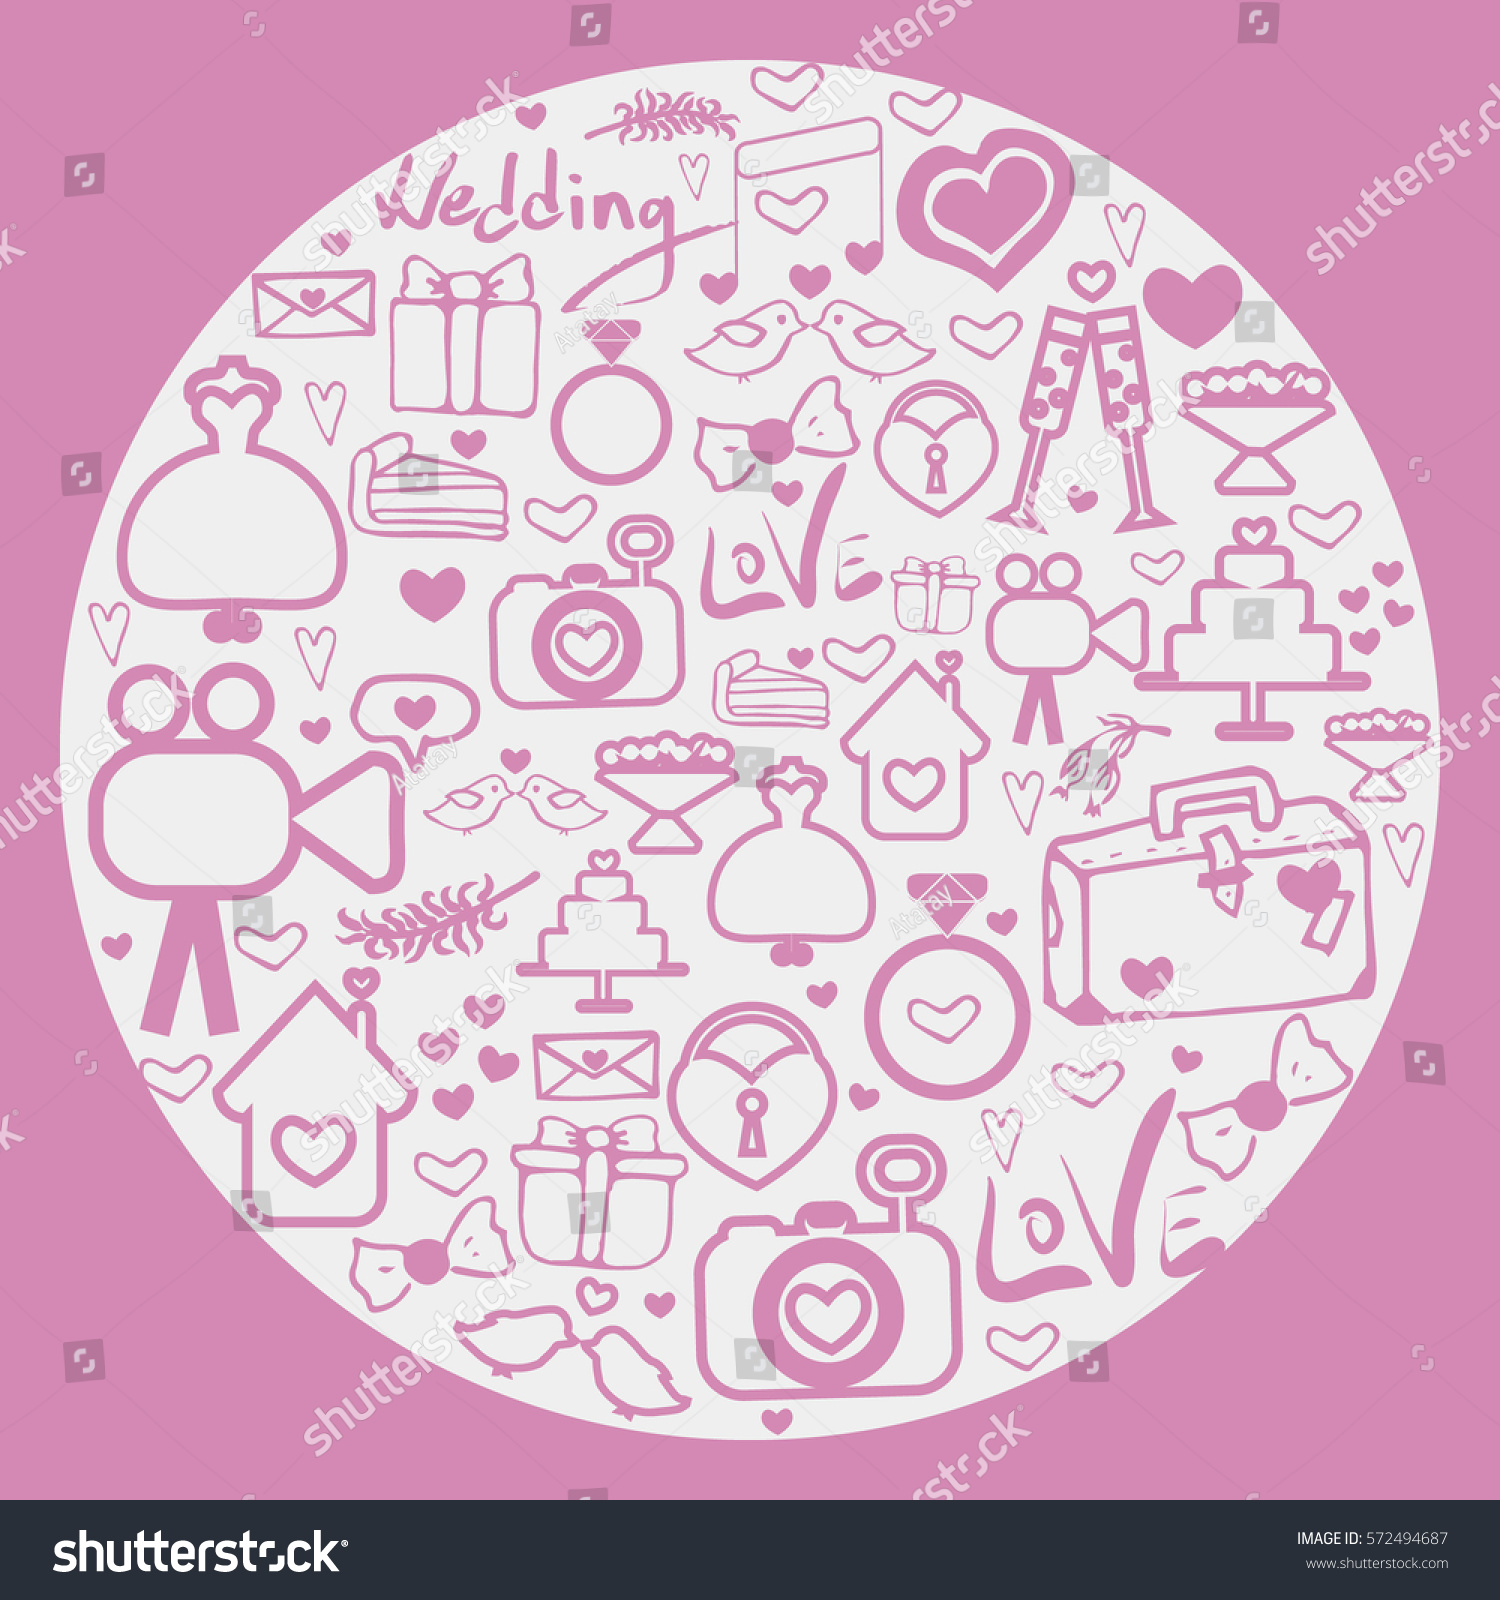 Vector Round Card Doodles On Theme Stock Vector 572494687 - Shutterstock